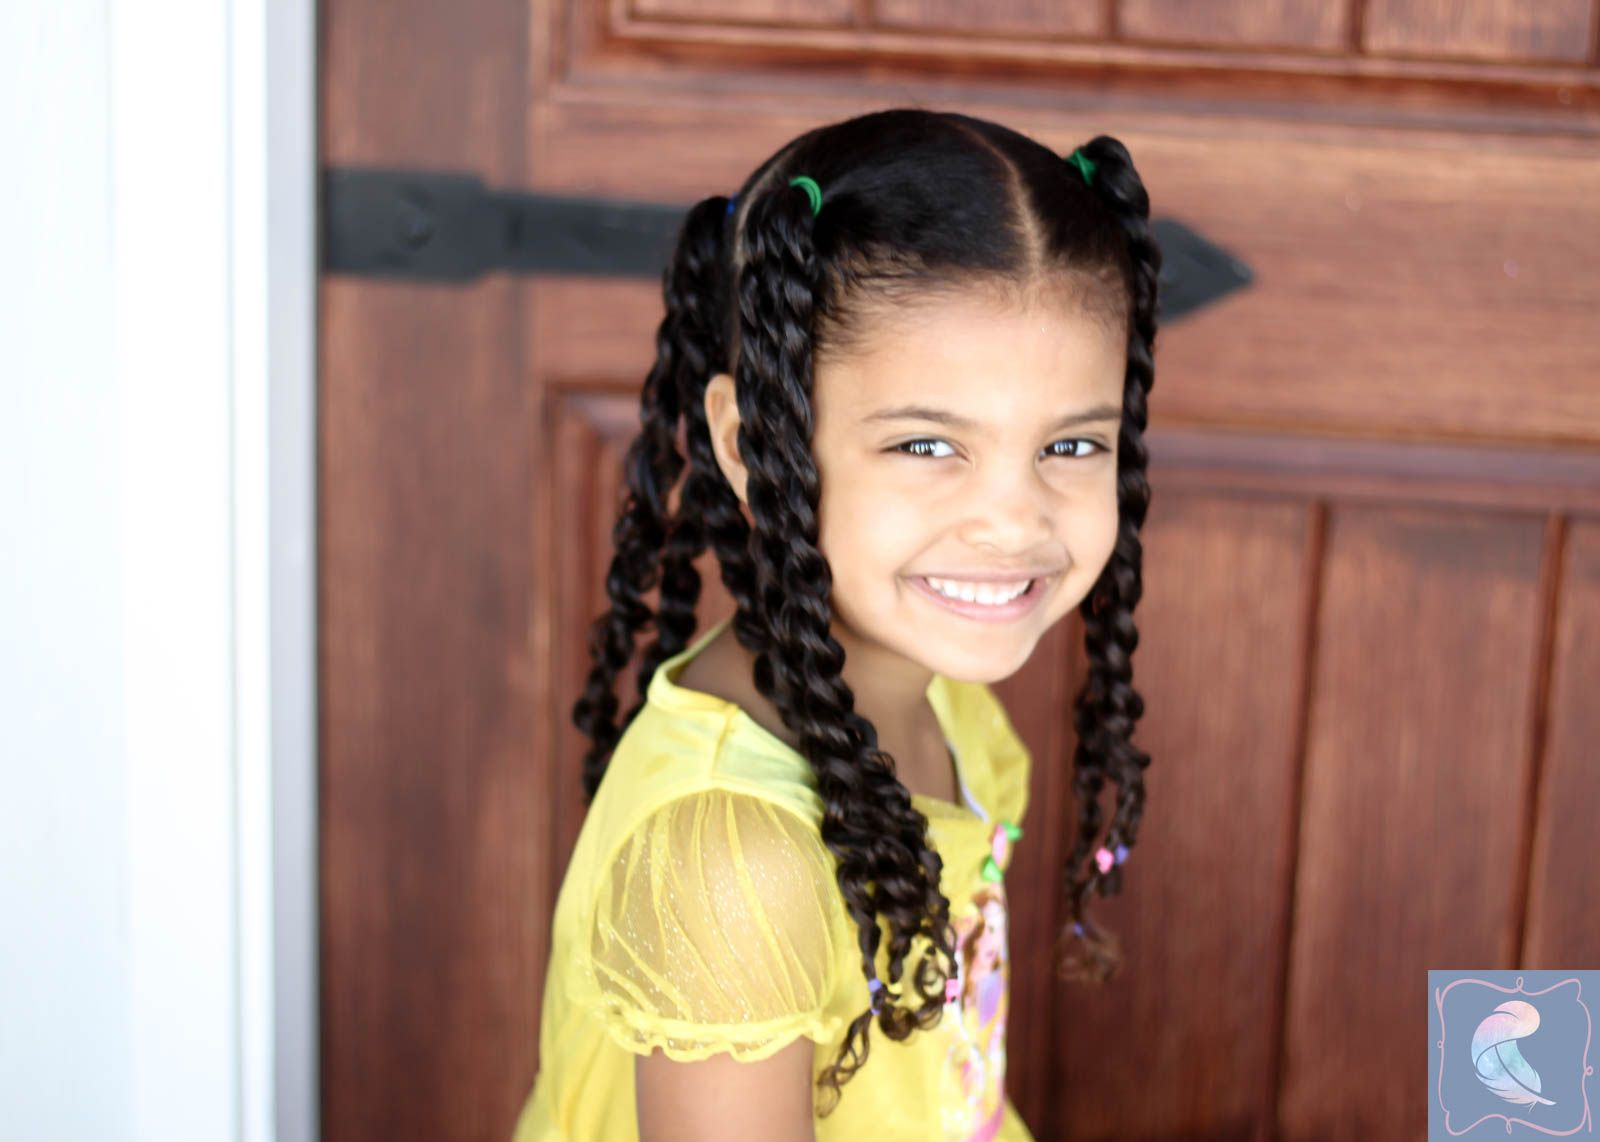 twist hairstyle for mixed kids hair | hair | mixed kids